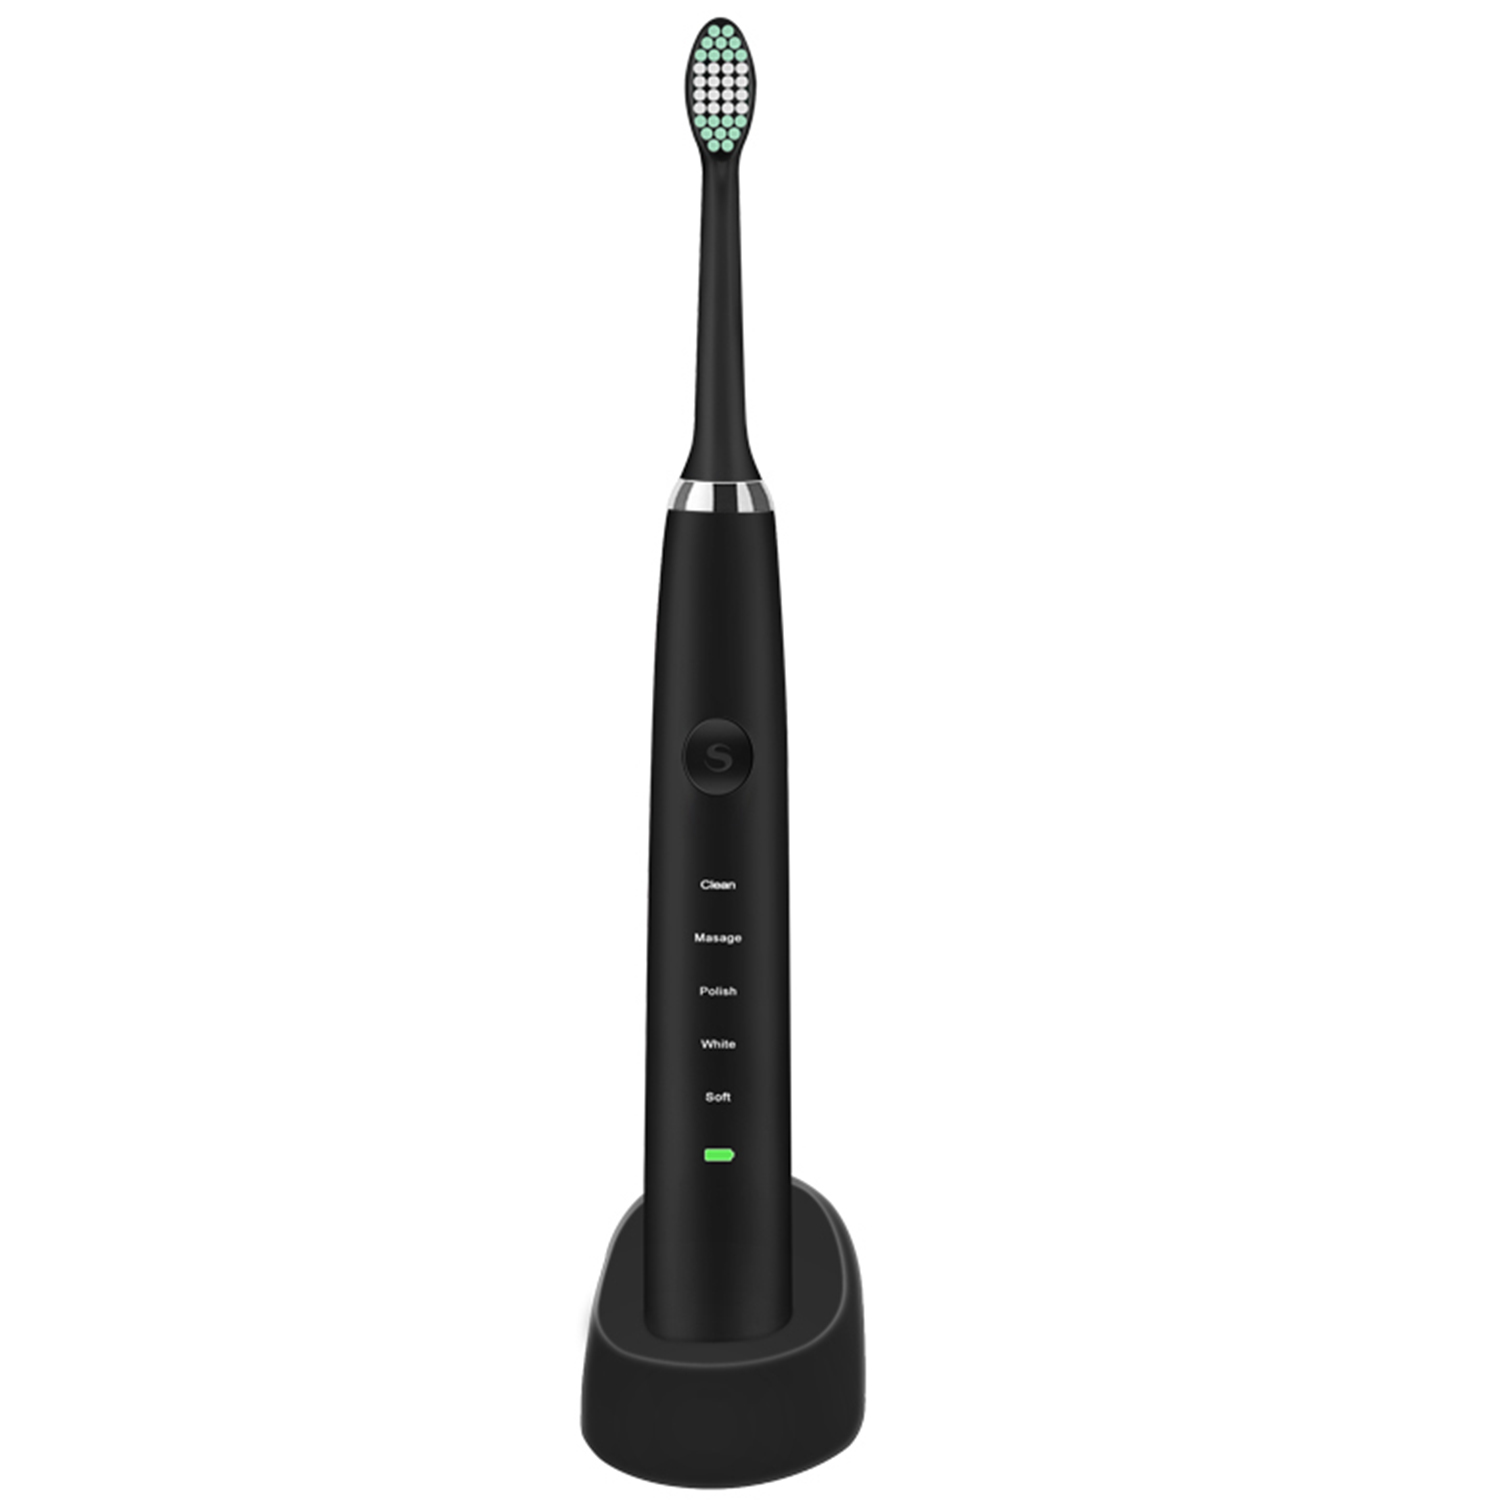 Hot Sale Rechargeable Sonic Toothbrush USB Charging Sonicare Electric Toothbrush IPX7 Waterproof Ultrasonic Deep-Clean Teeth image